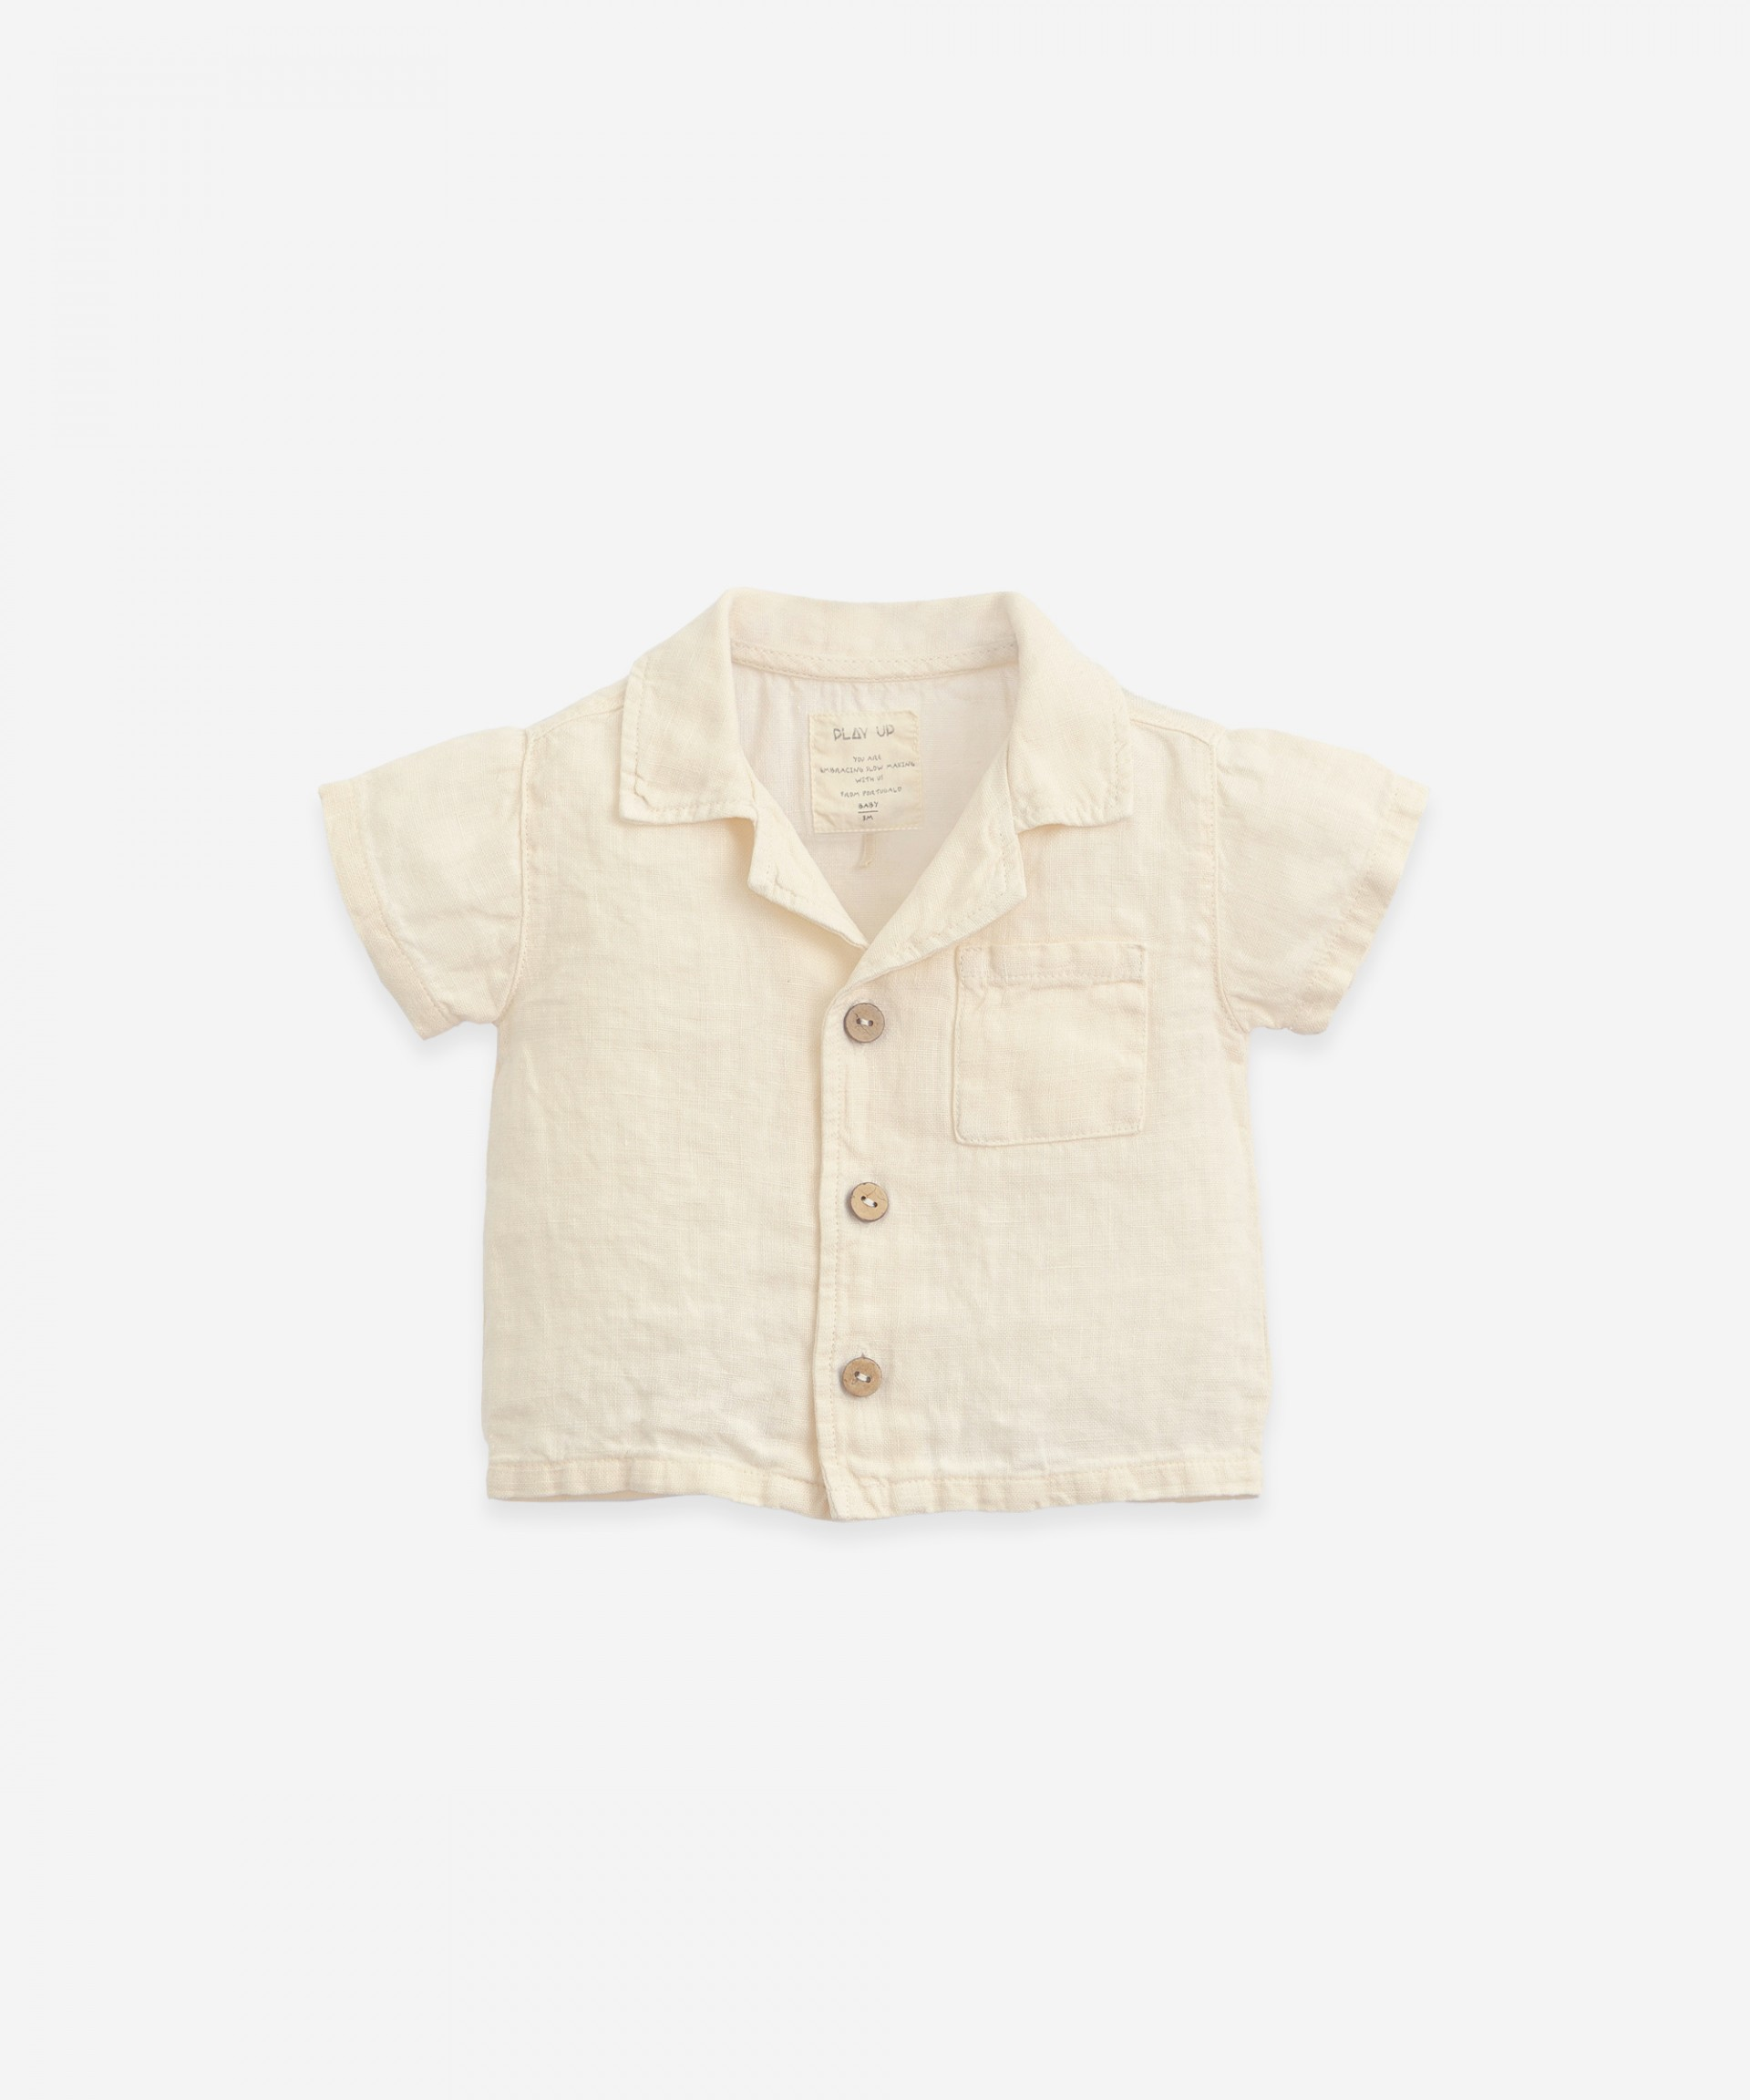 Linen shirt with coconut buttons| Botany